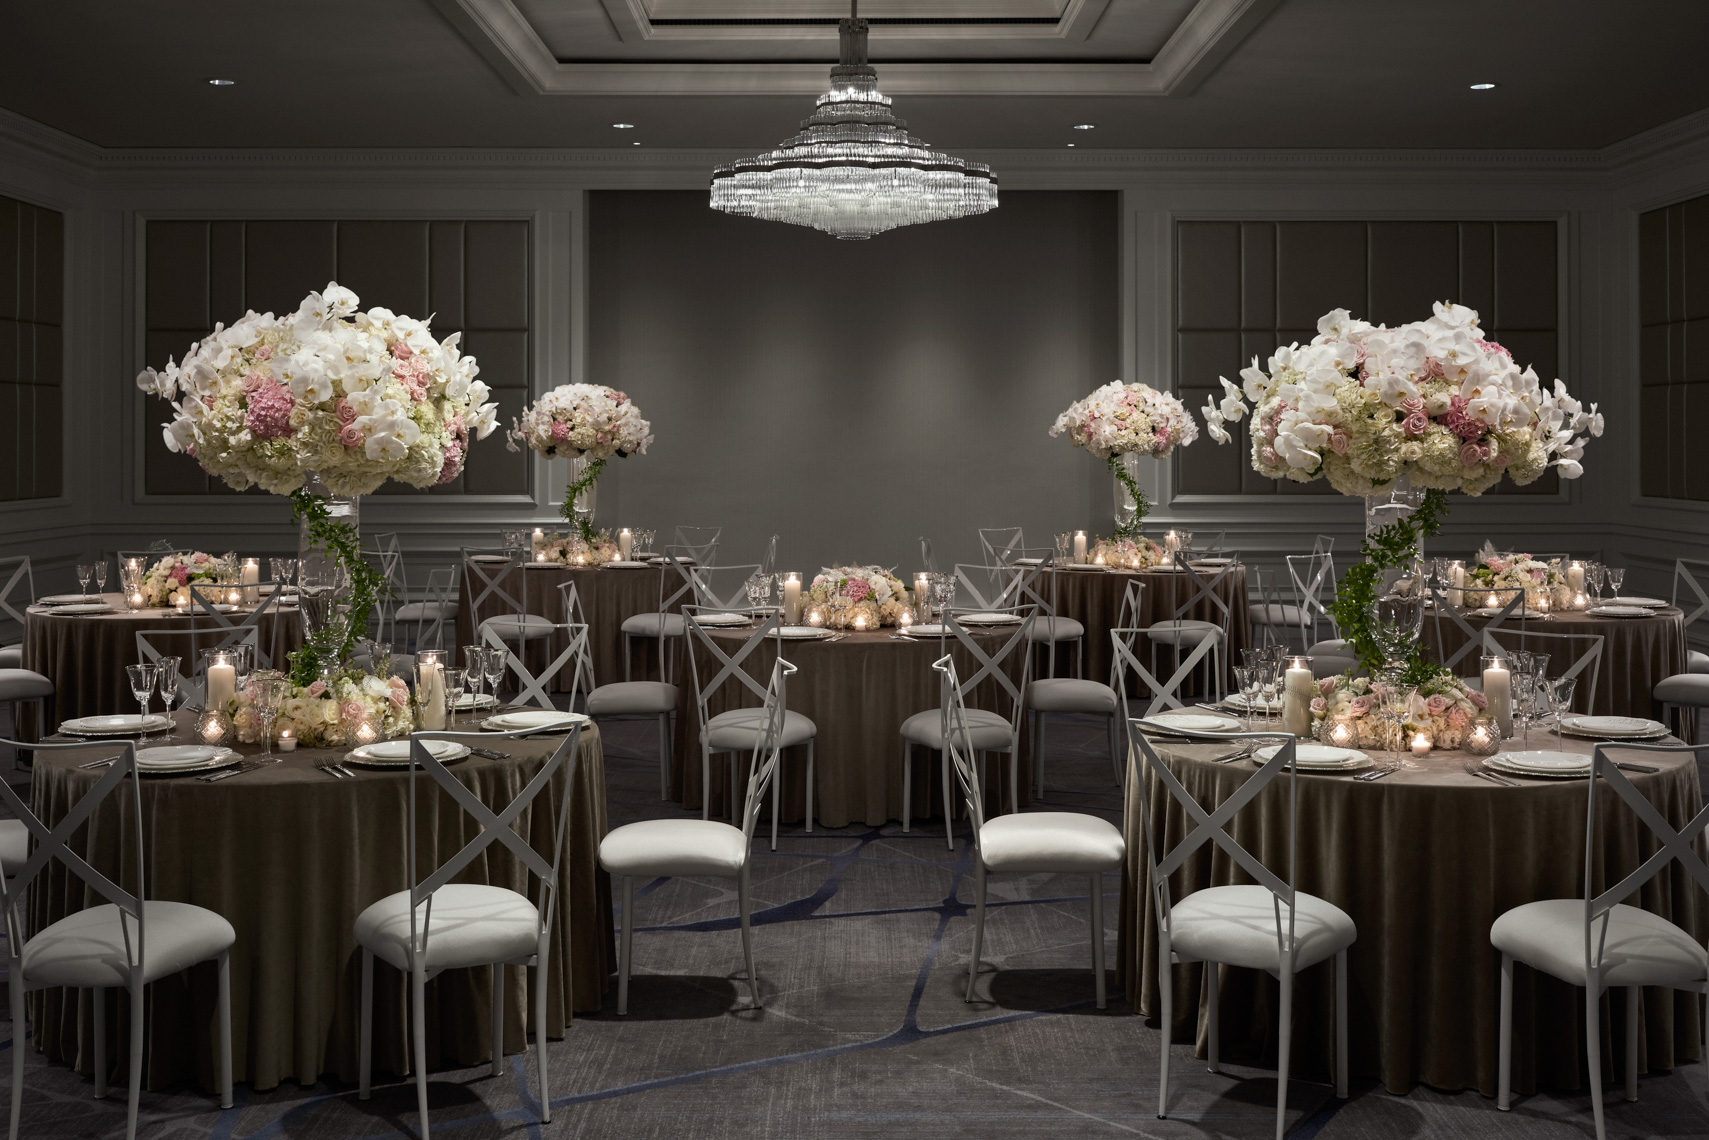 HOTELS-Spaces75-Ritz-Carlton-Cleveland5